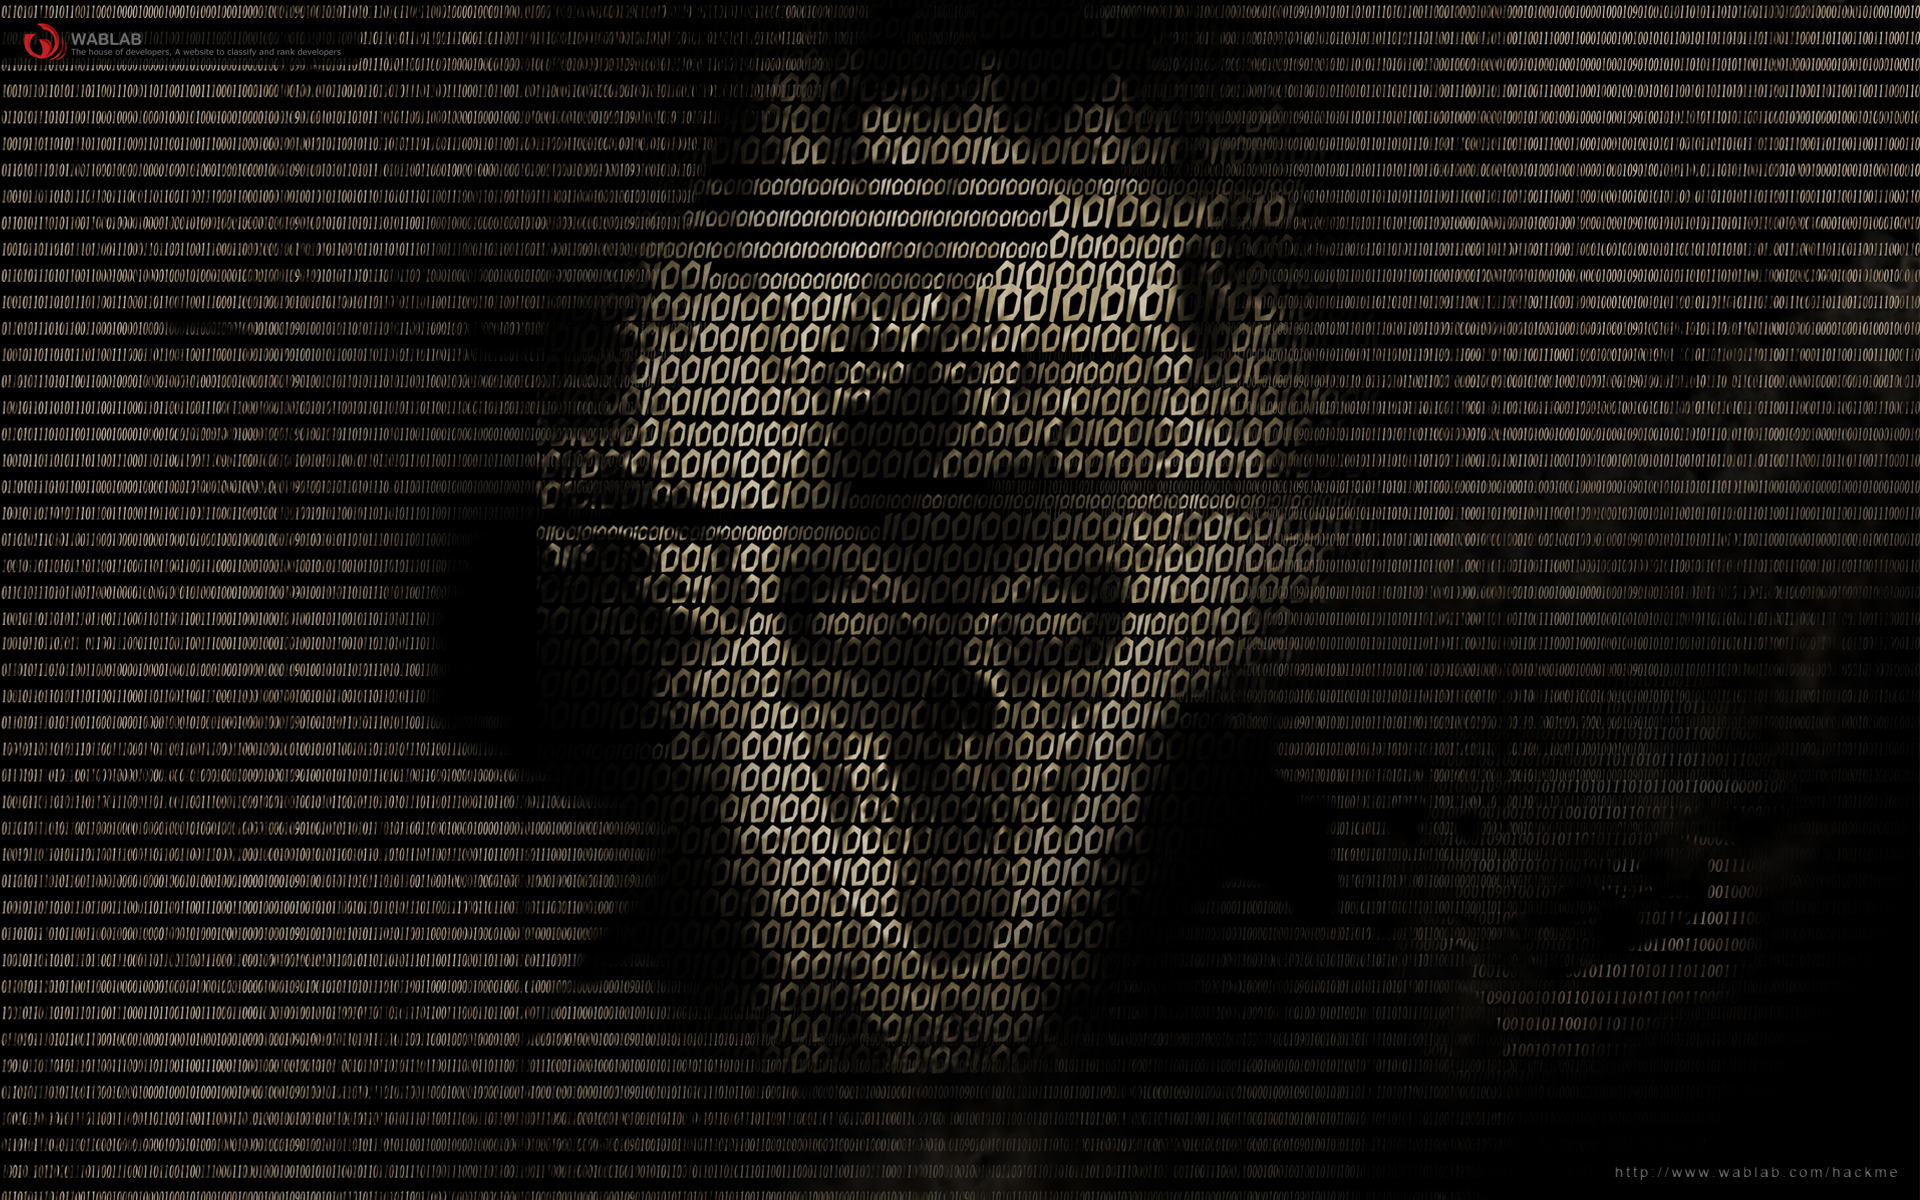 hackers wallpaper wallpapers de - photo #44